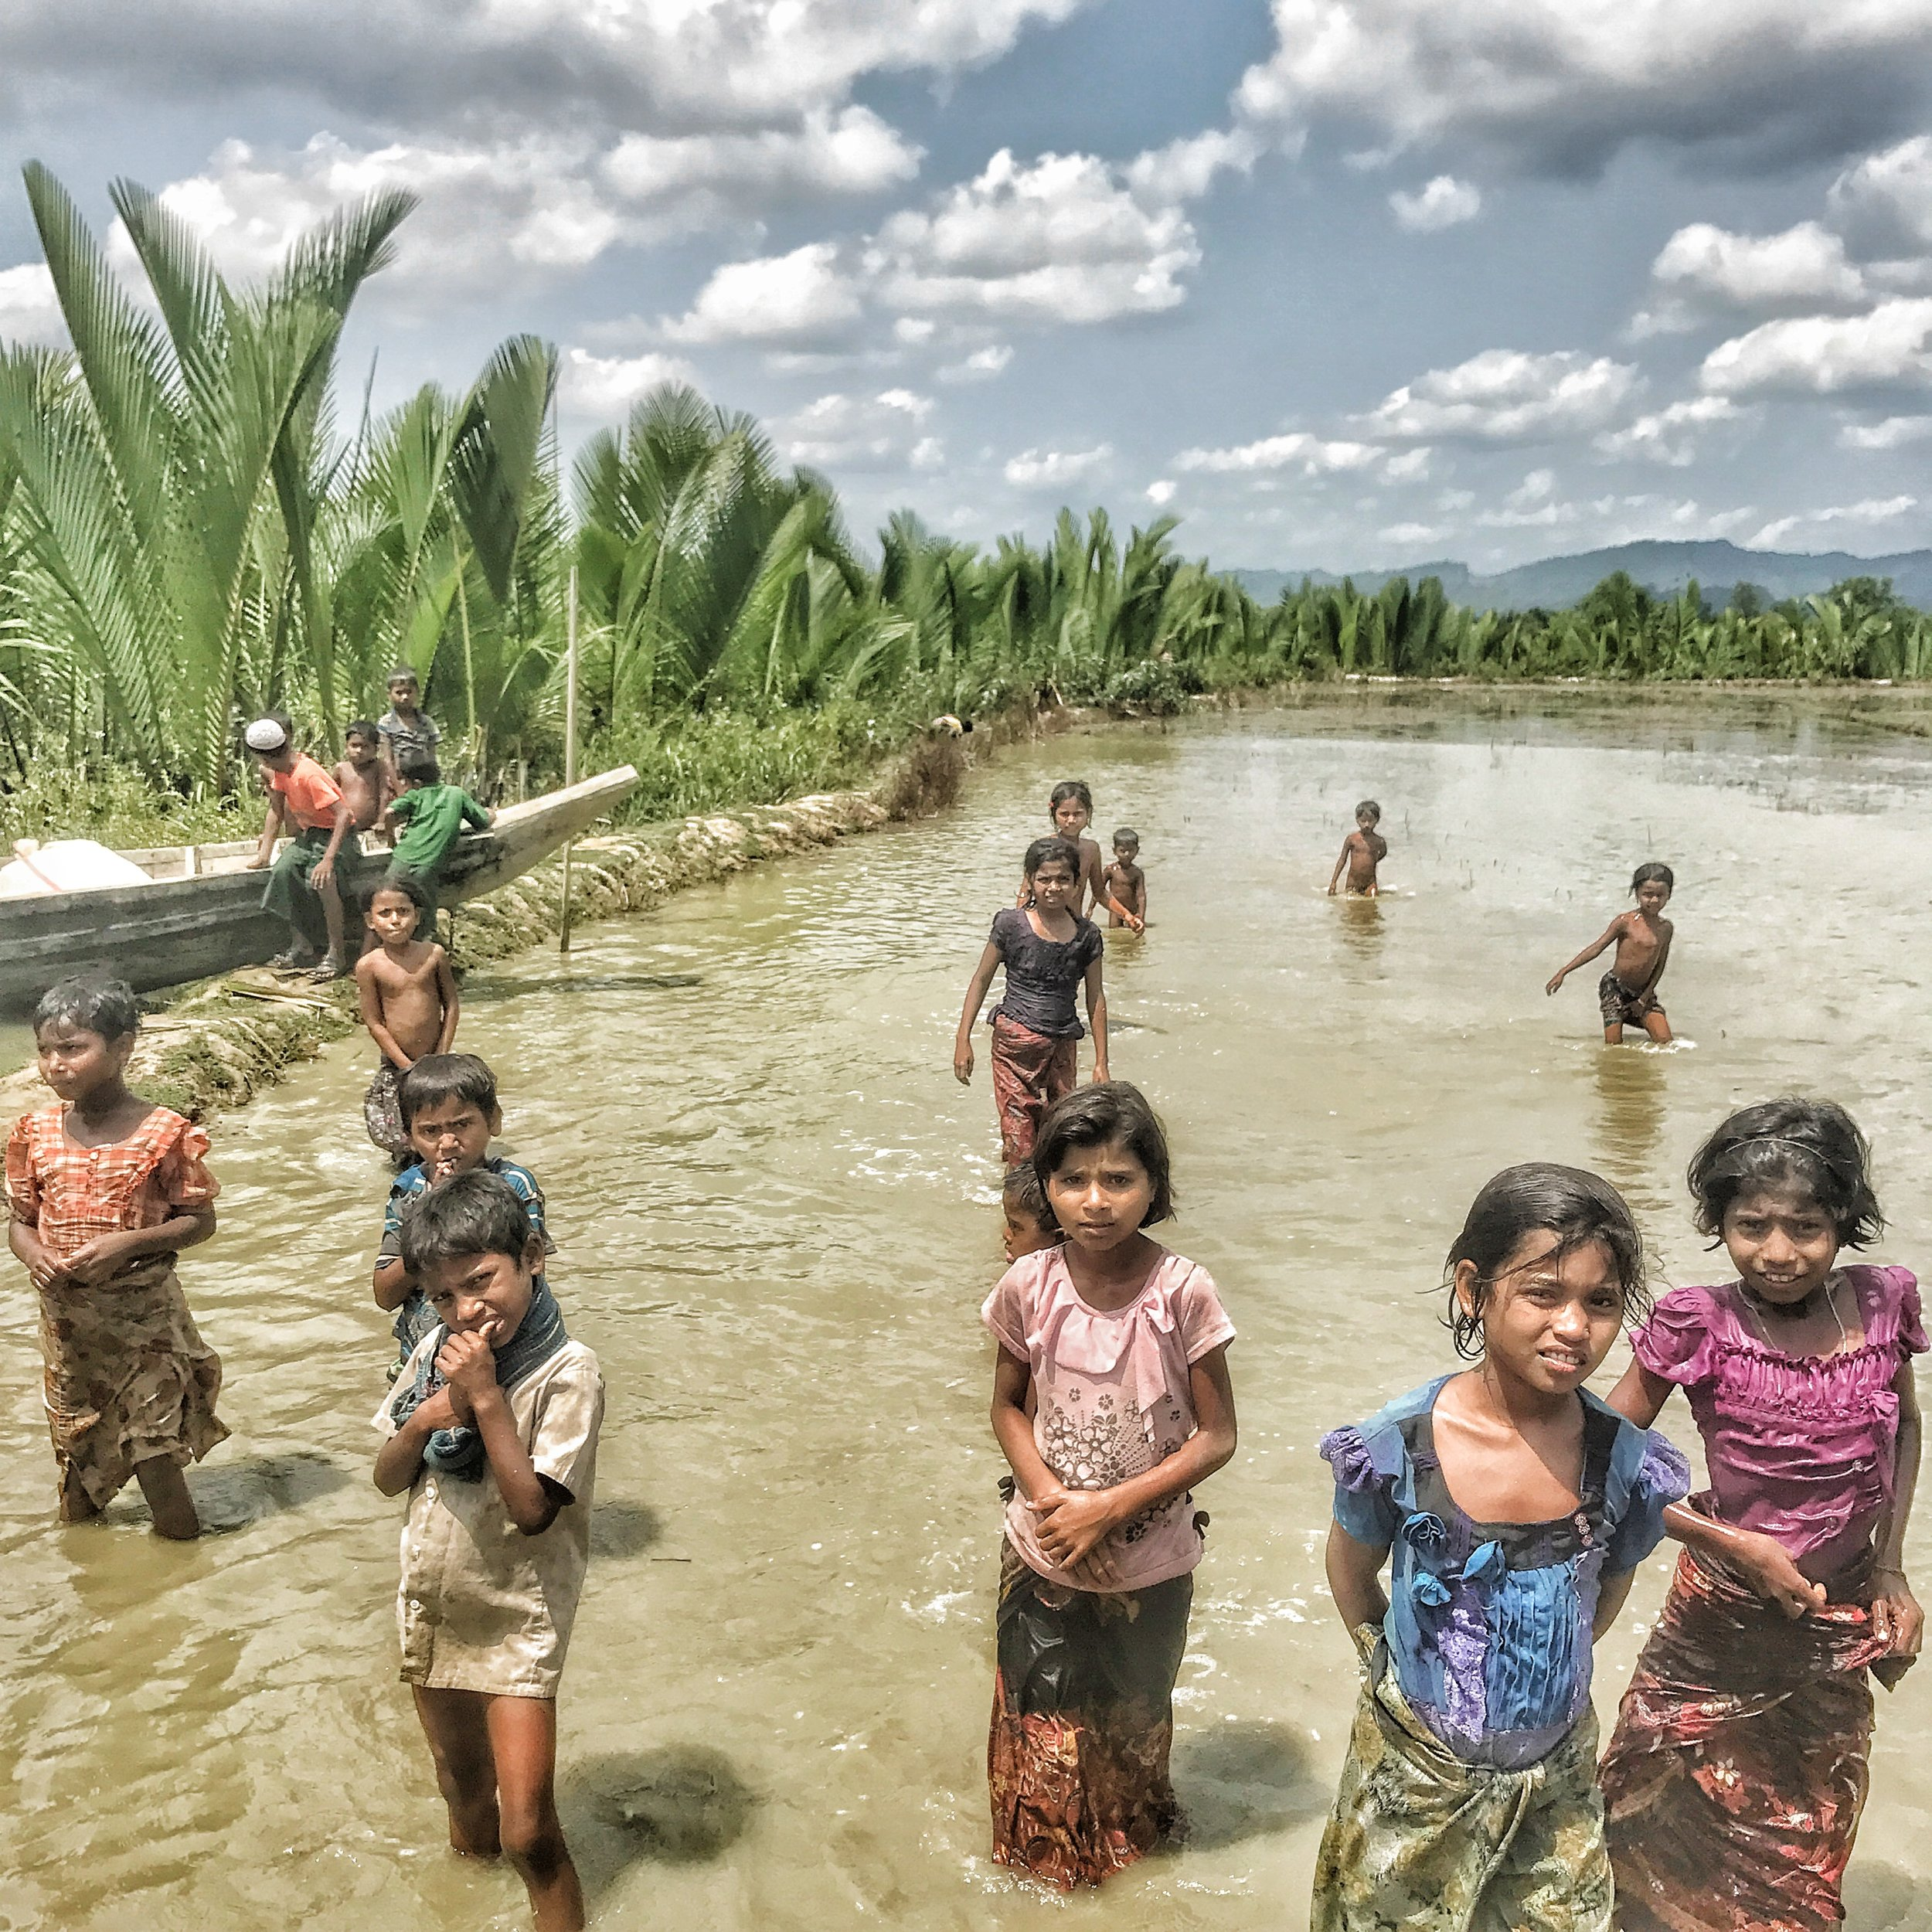 Rohingya children at play in the waters of Myanmar's Northern Rakhine State, shortly before the Rohingya Refugee Crisis.  Ashley S. Kinseth, July 2017.